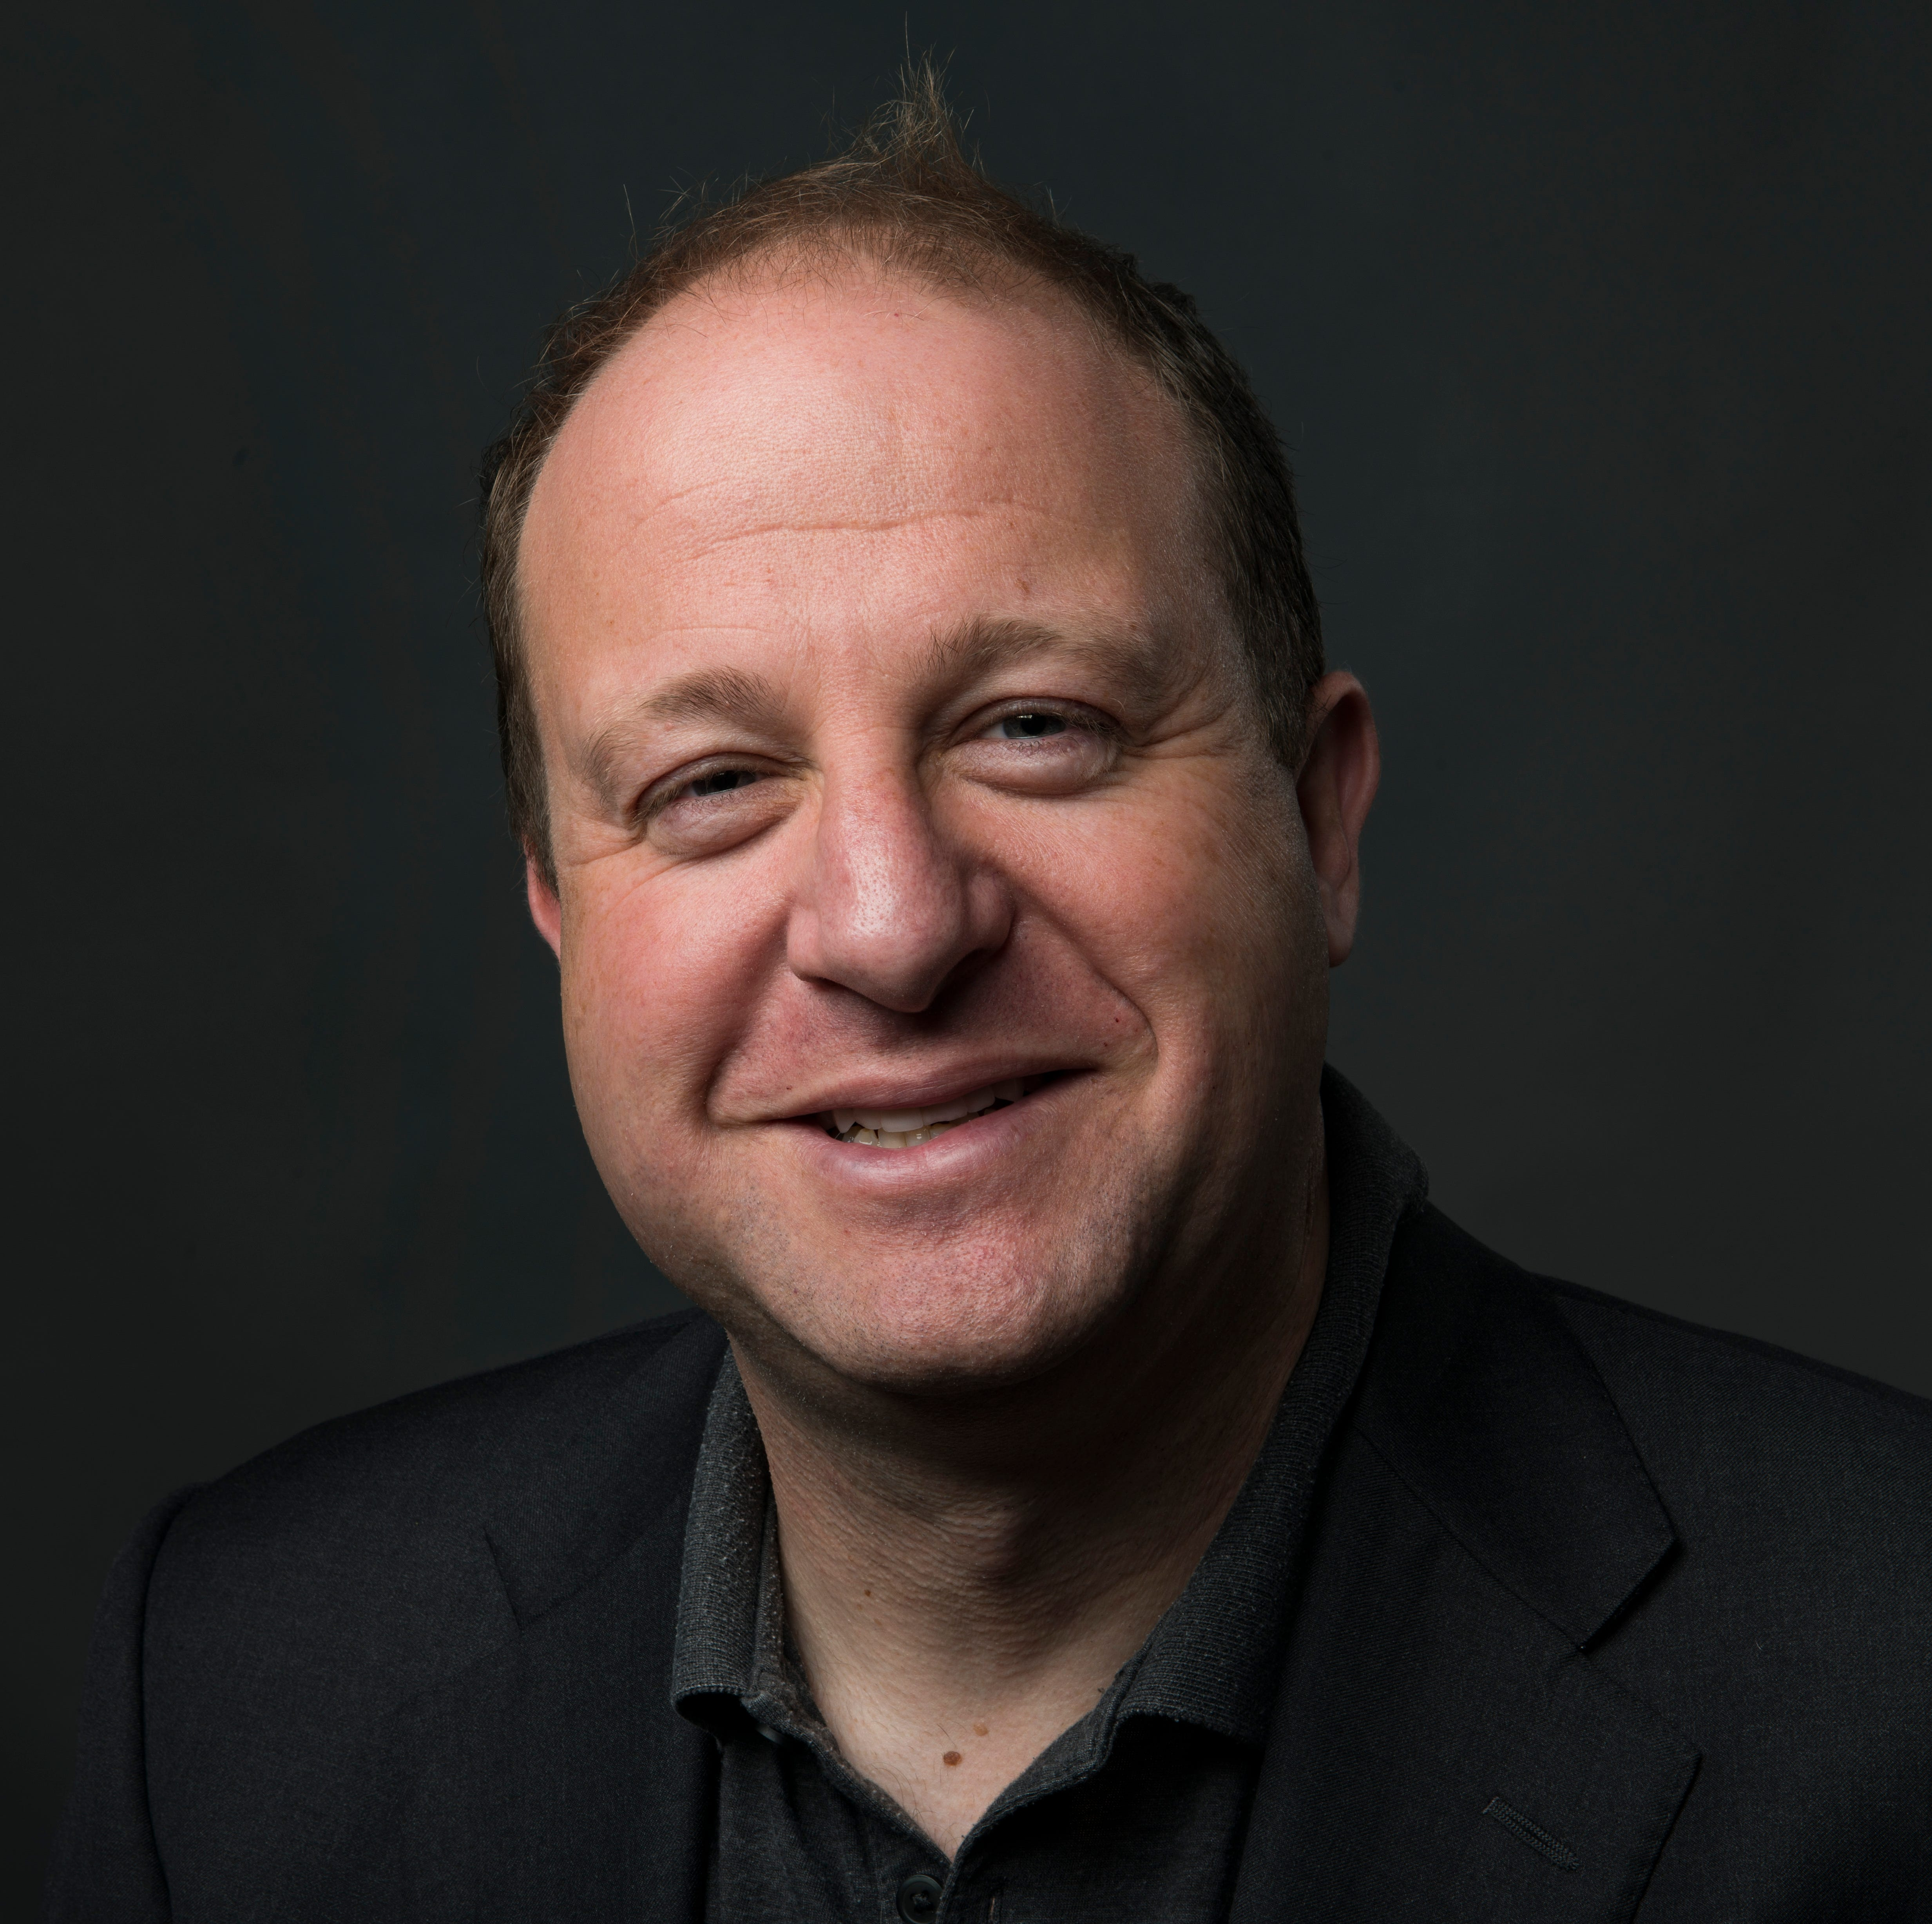 Coloradoan endorsement: Jared Polis offers a positive vision for Colorado